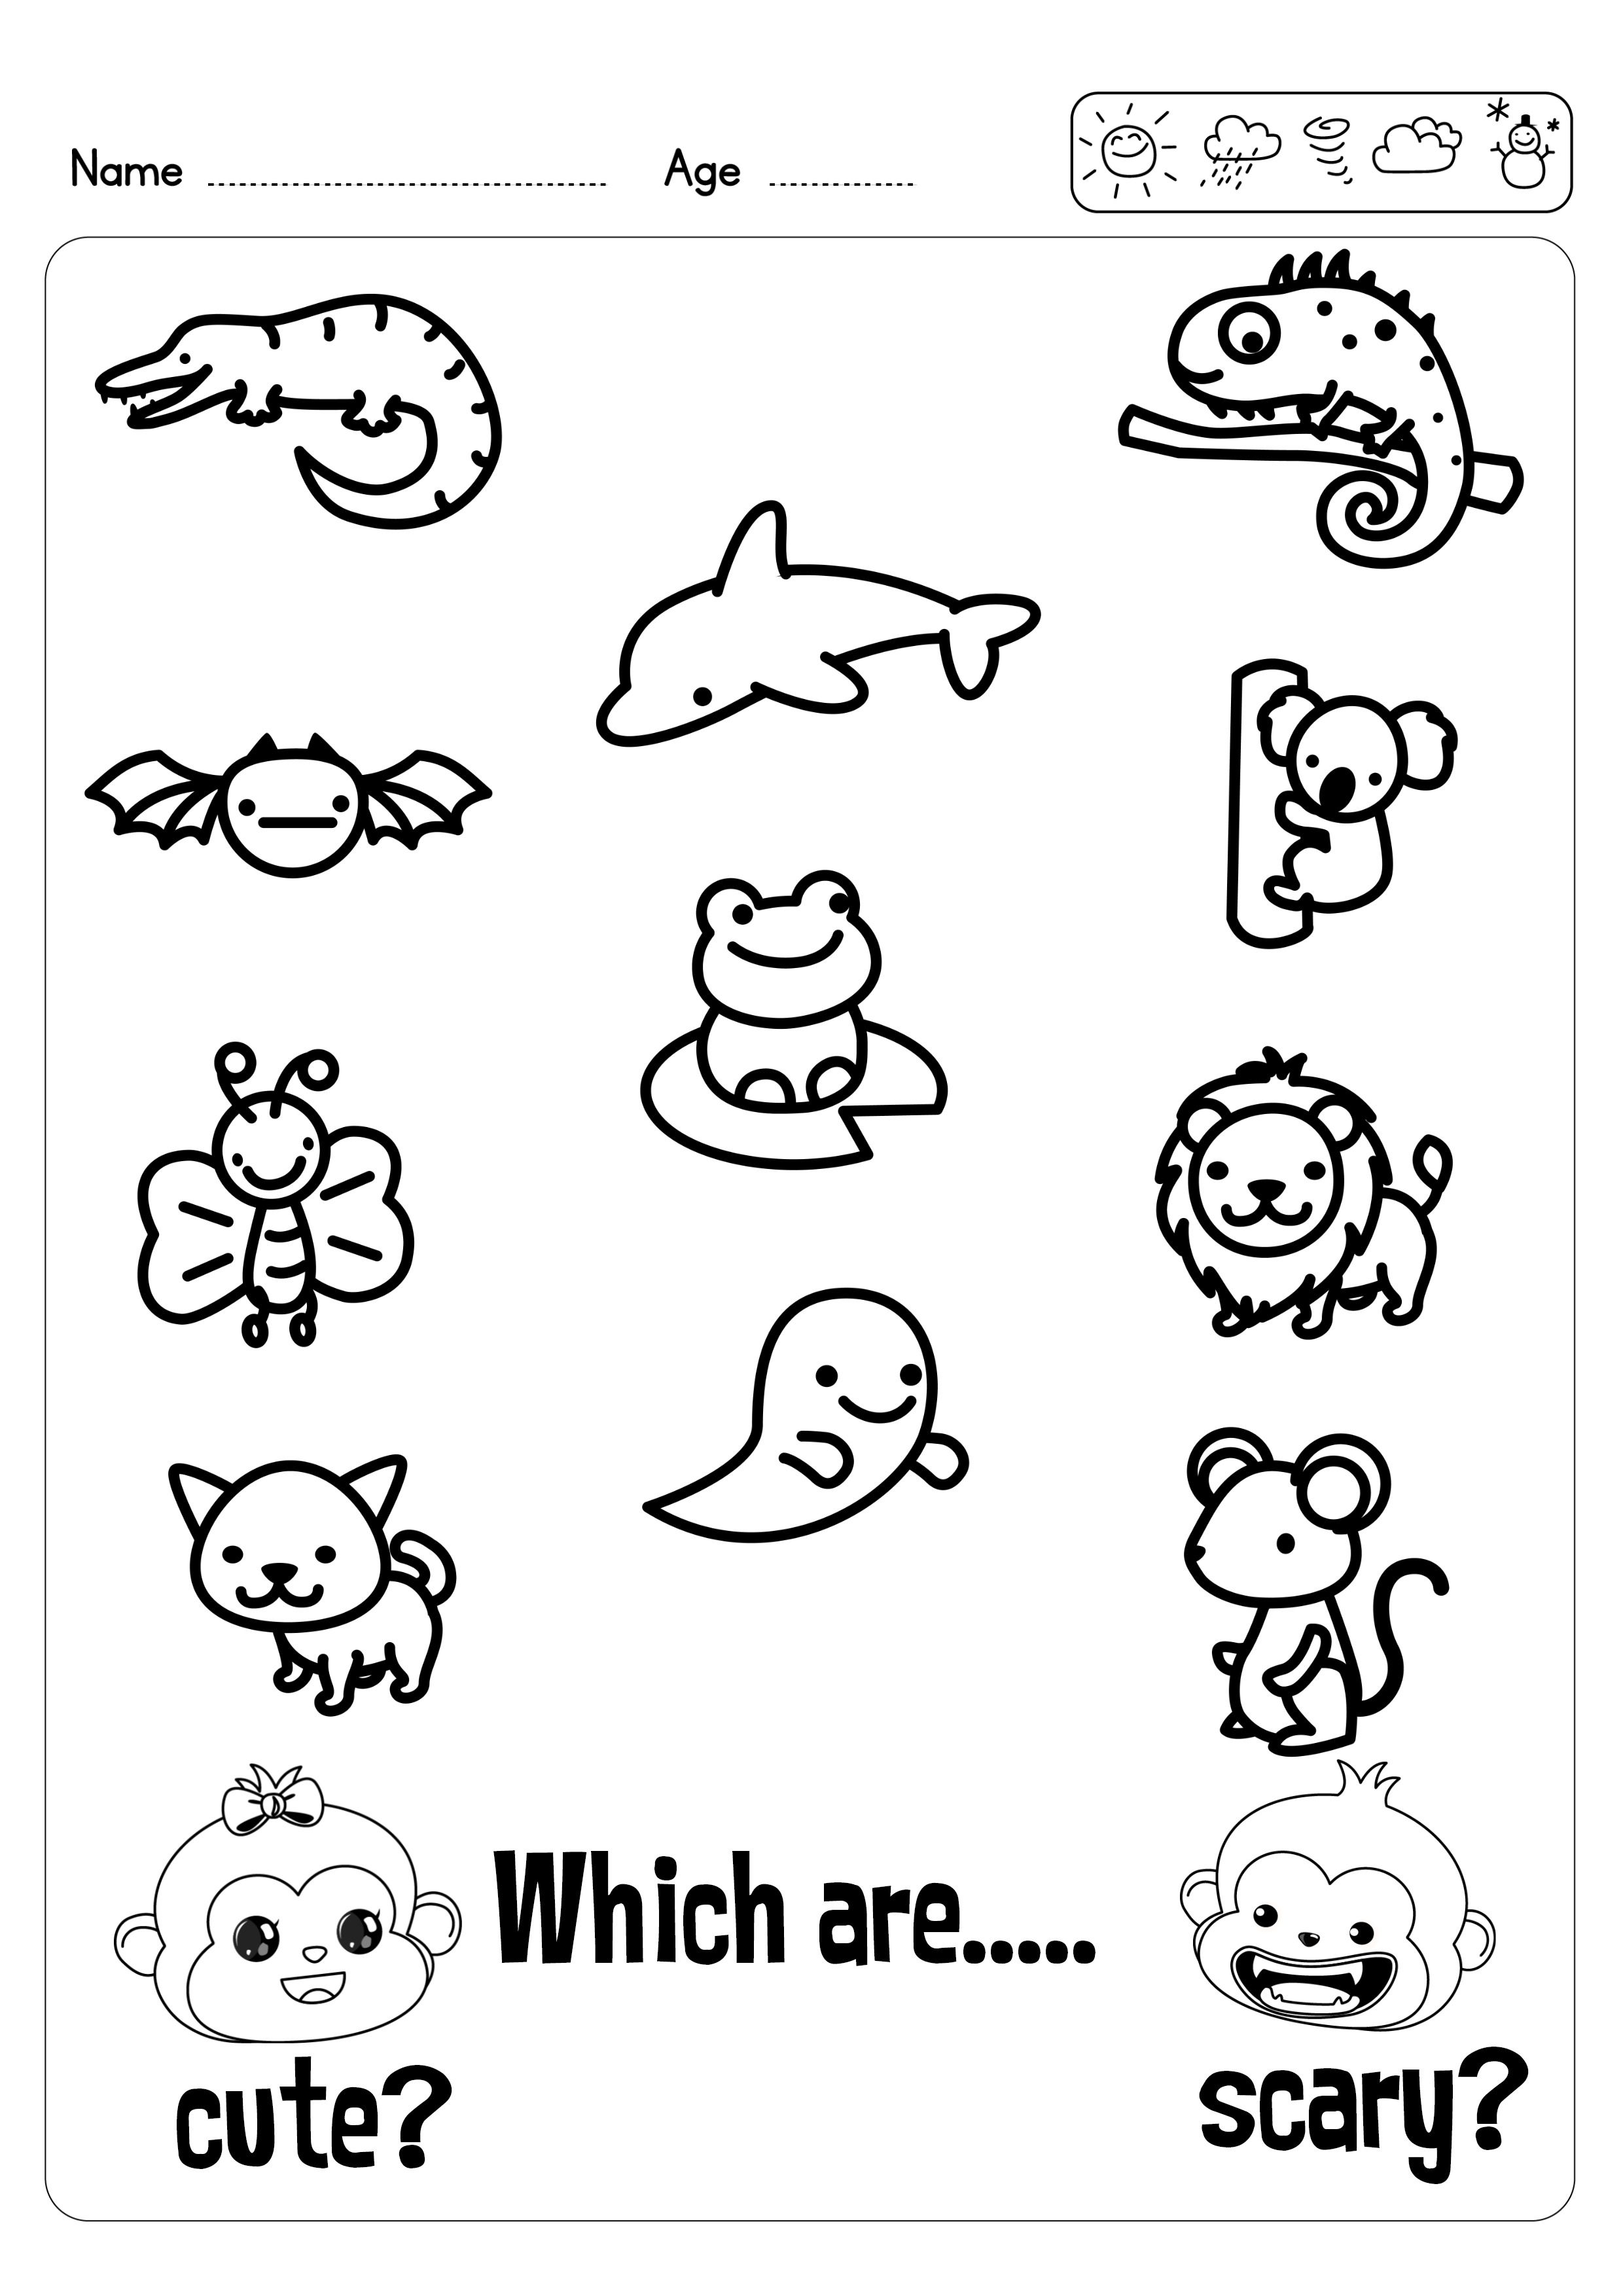 2 Free Cute Or Scary Worksheets